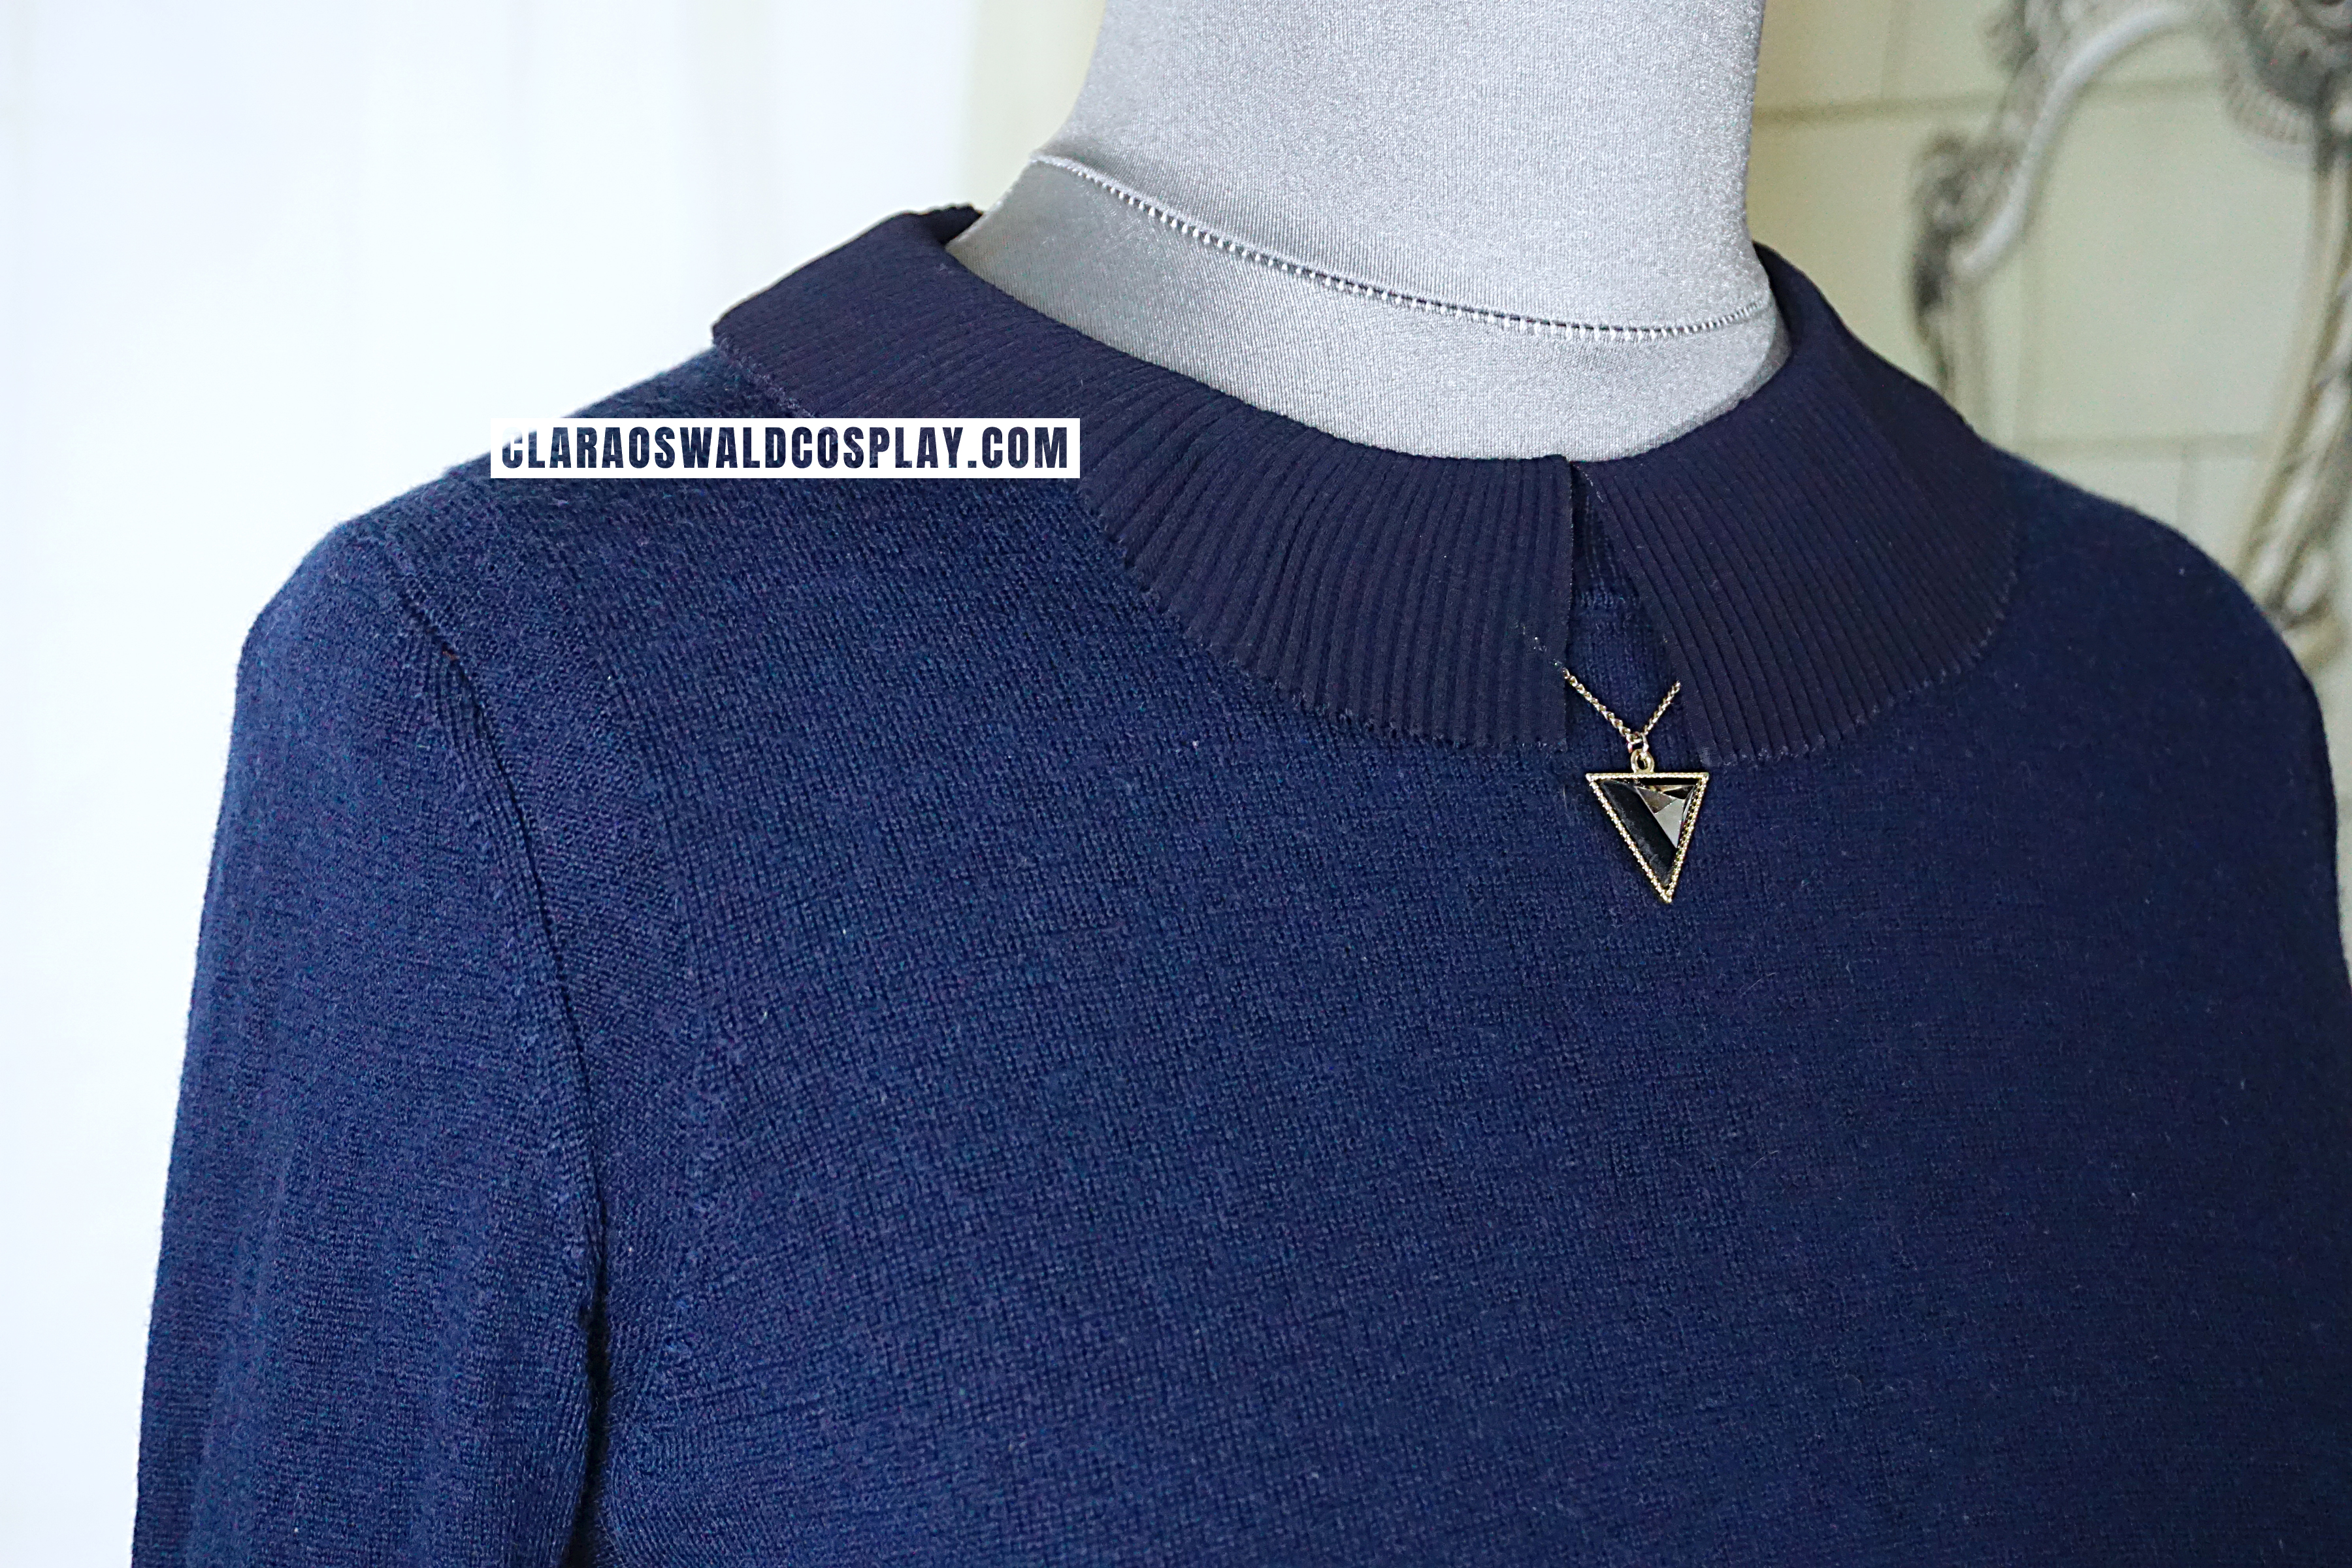 The GAP Merino Jumper in Navy can be identified by the sleeves